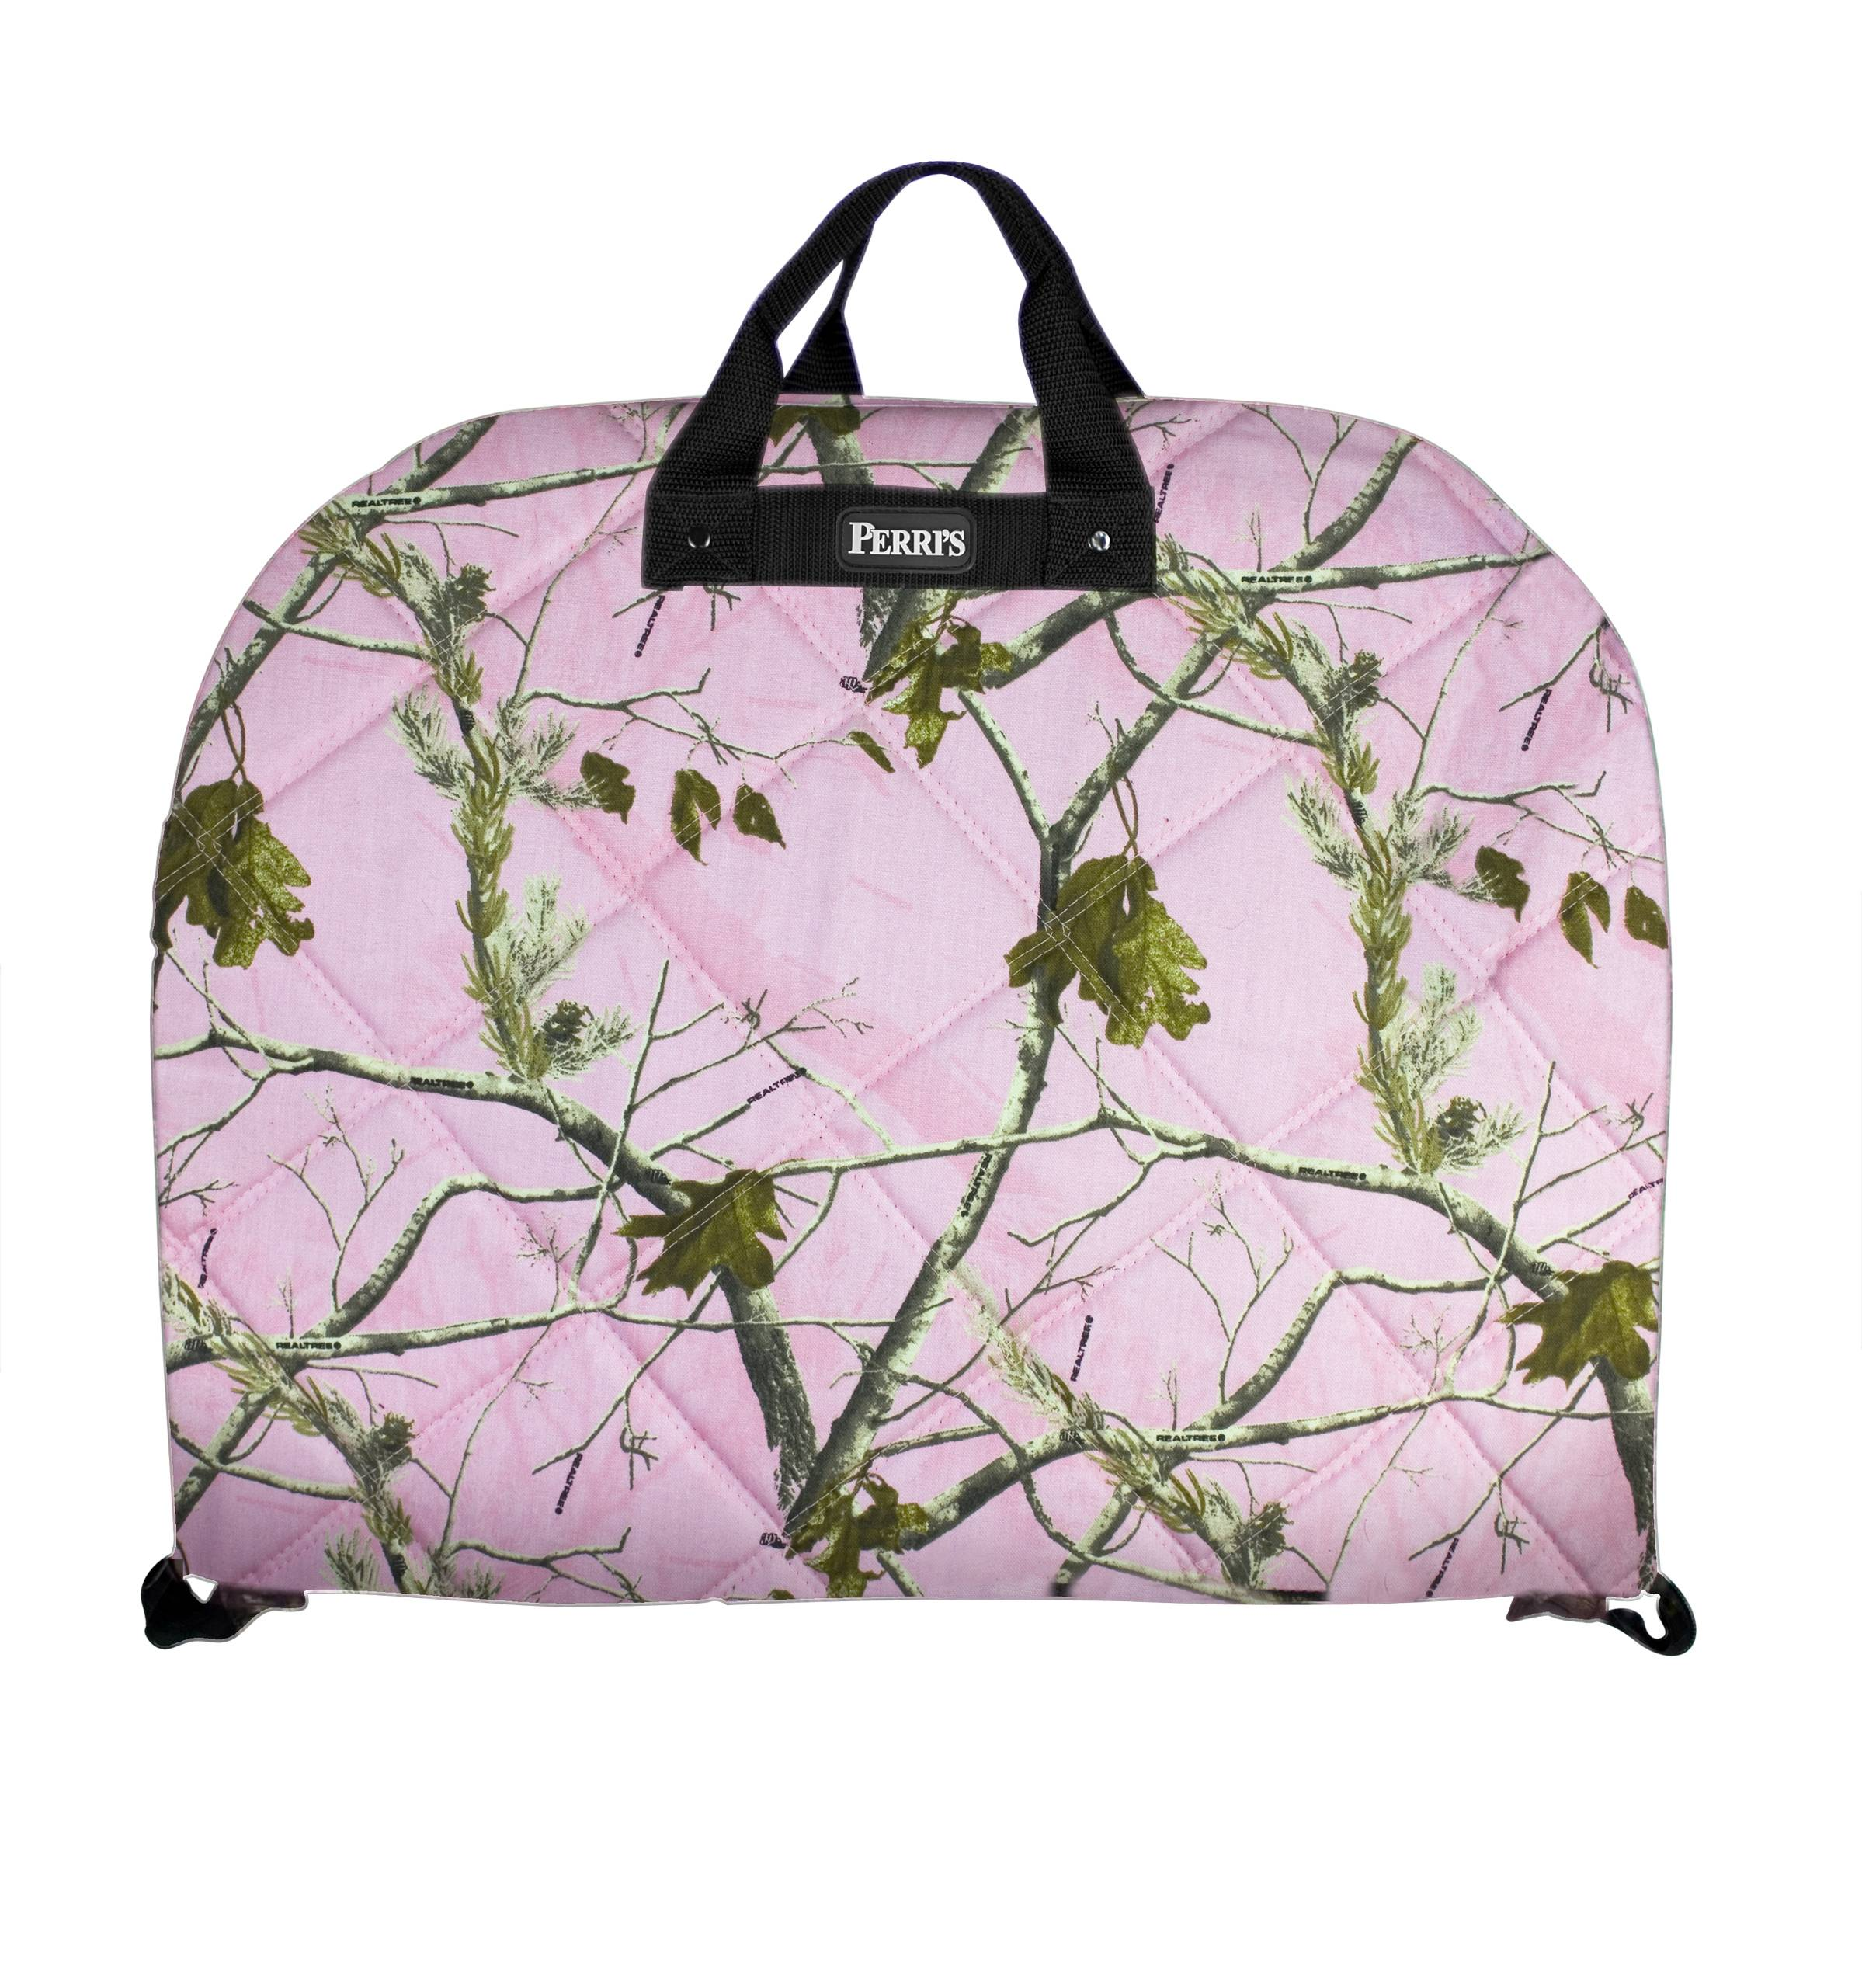 Perris Real Tree Premium Garment Bag